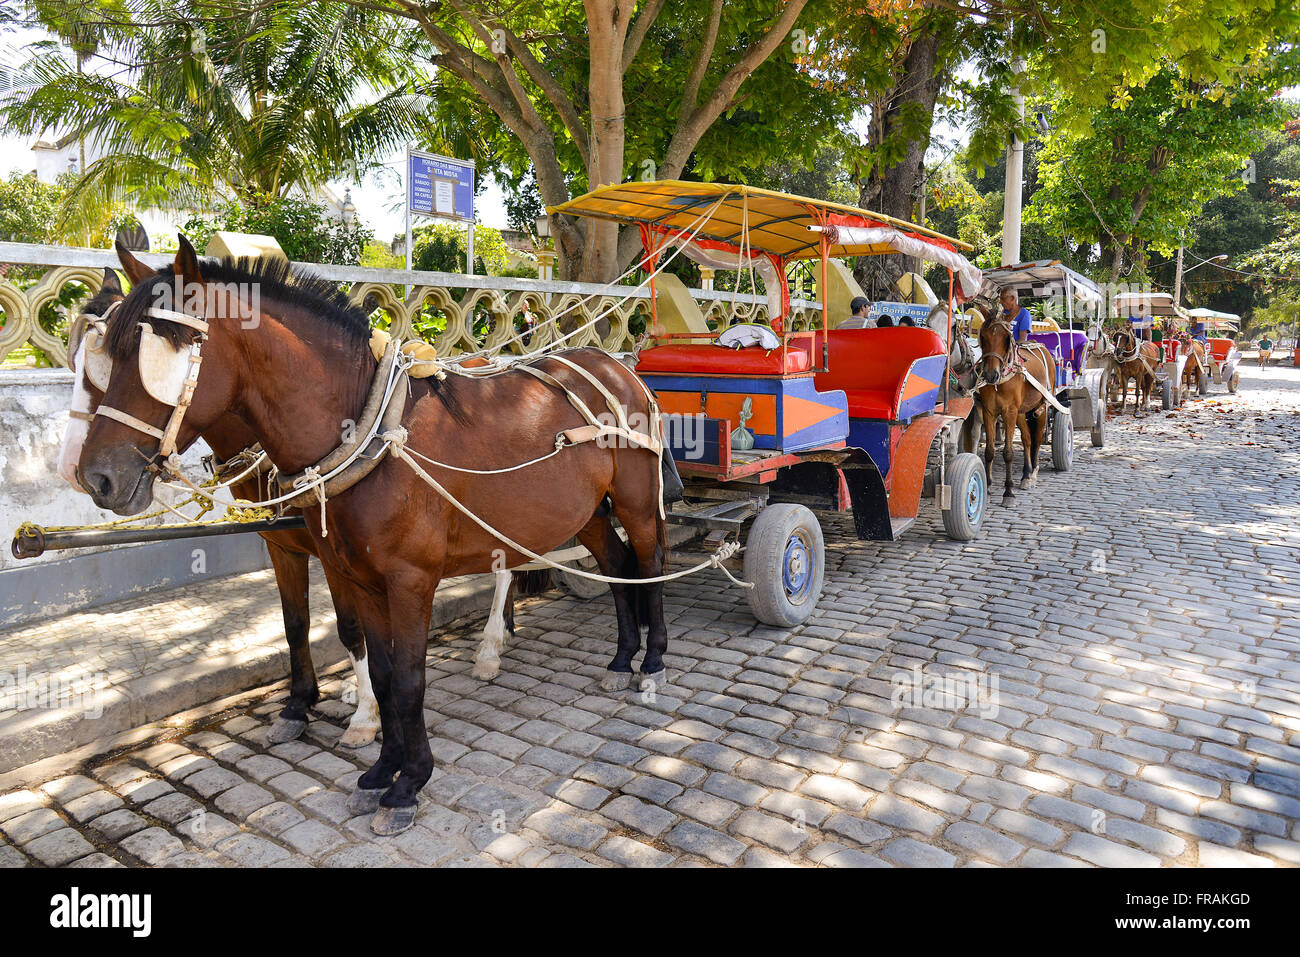 Carriages for tourist ride in the neighborhood Paqueta - Island Paqueta - Stock Image